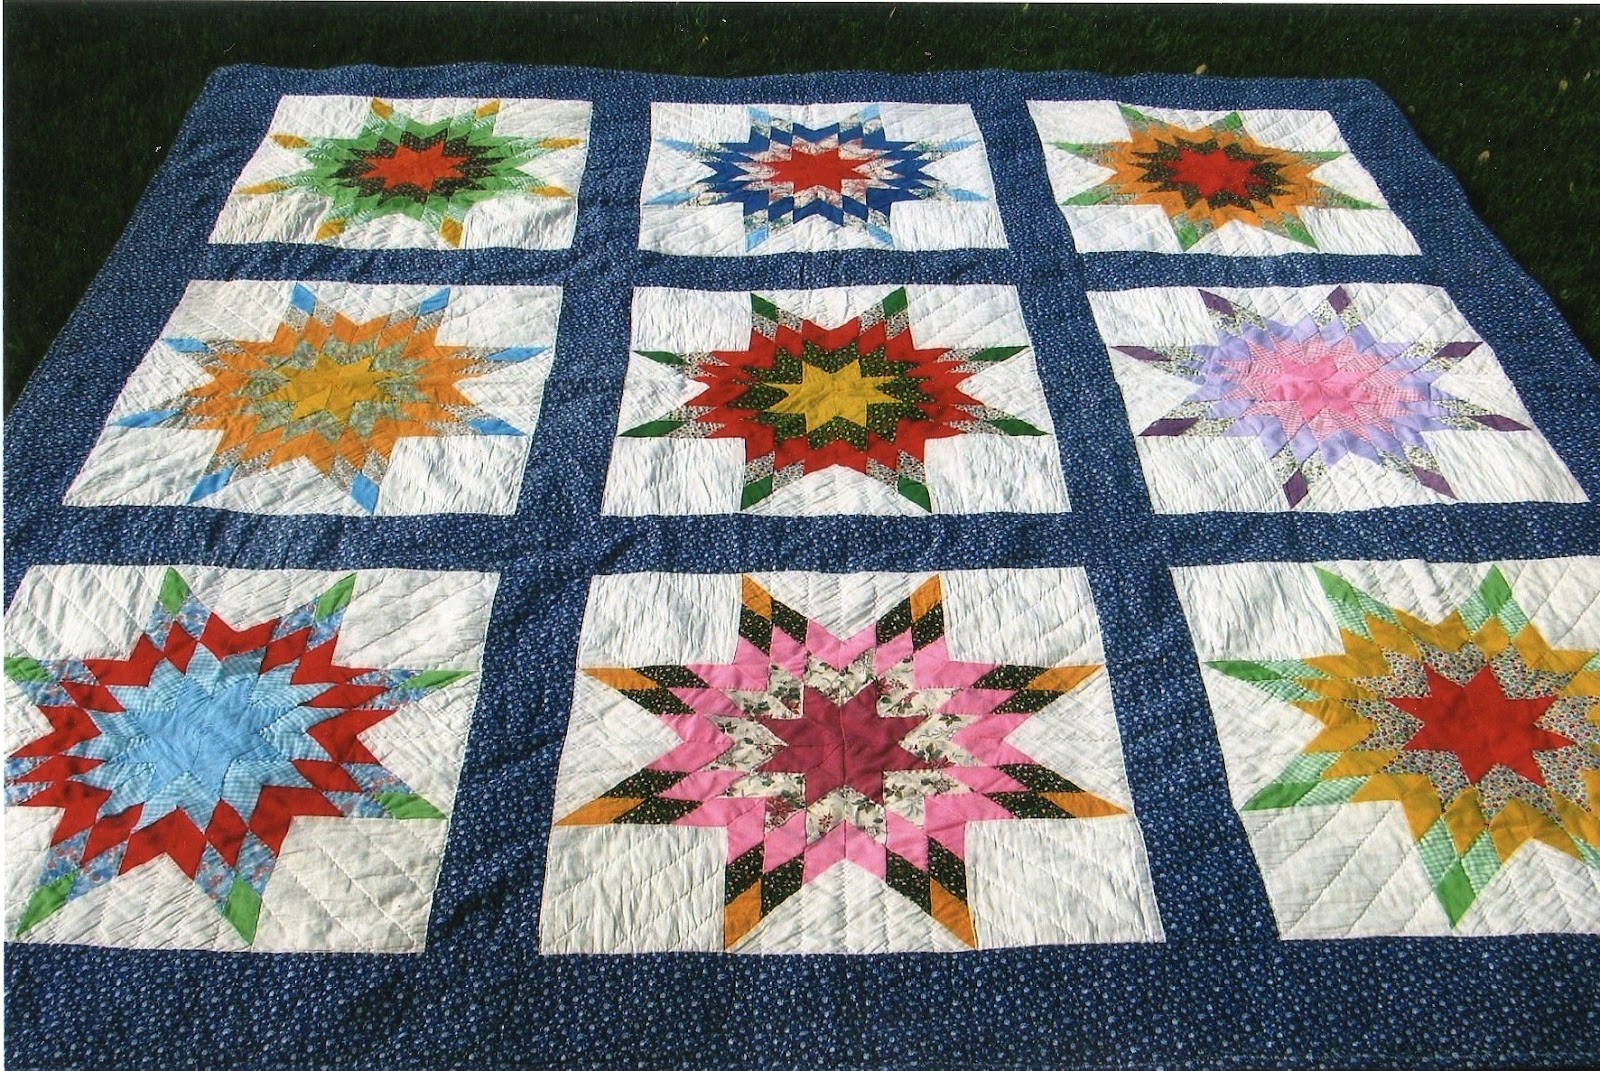 The Golden Wedding Anniversary Quilt